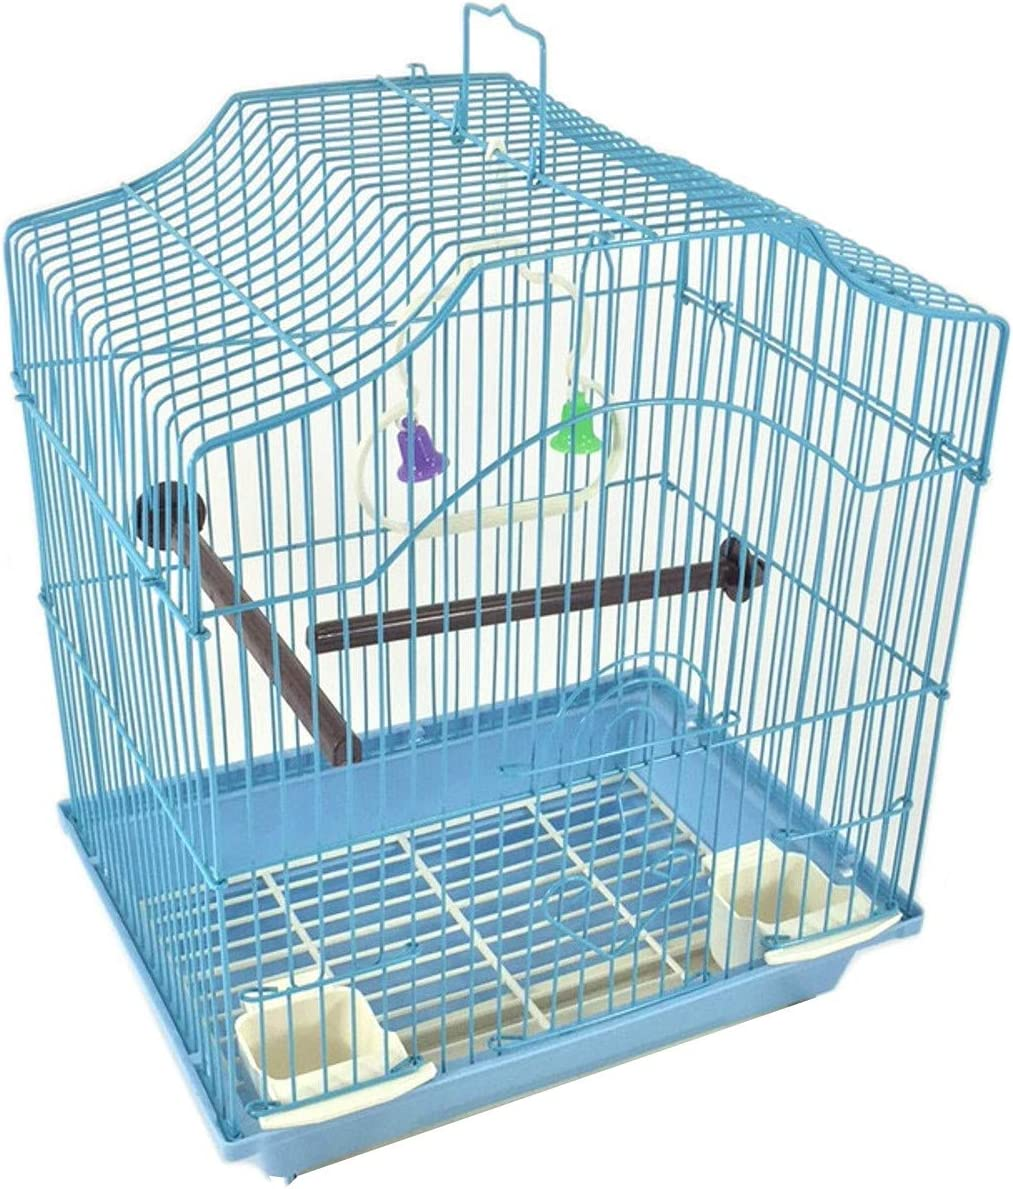 hardwood and stainless bar parakeetfinch cage with round front